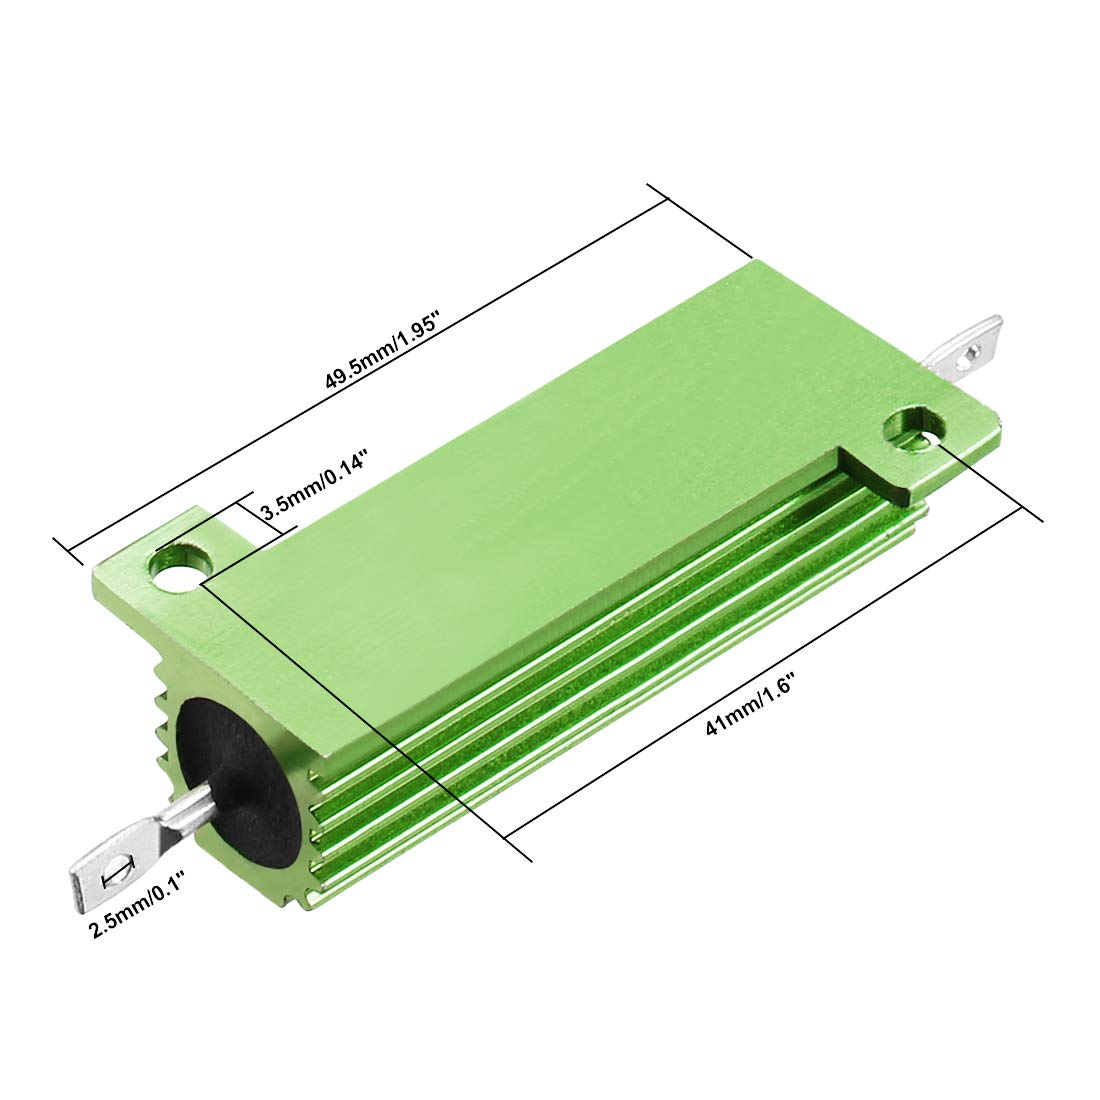 sourcingmap 50W 220 Ohm 5/% Aluminum Housing Resistor Screw Tap Chassis Mounted Aluminum Case Wirewound Resistor Load Resistors Green 2 pcs